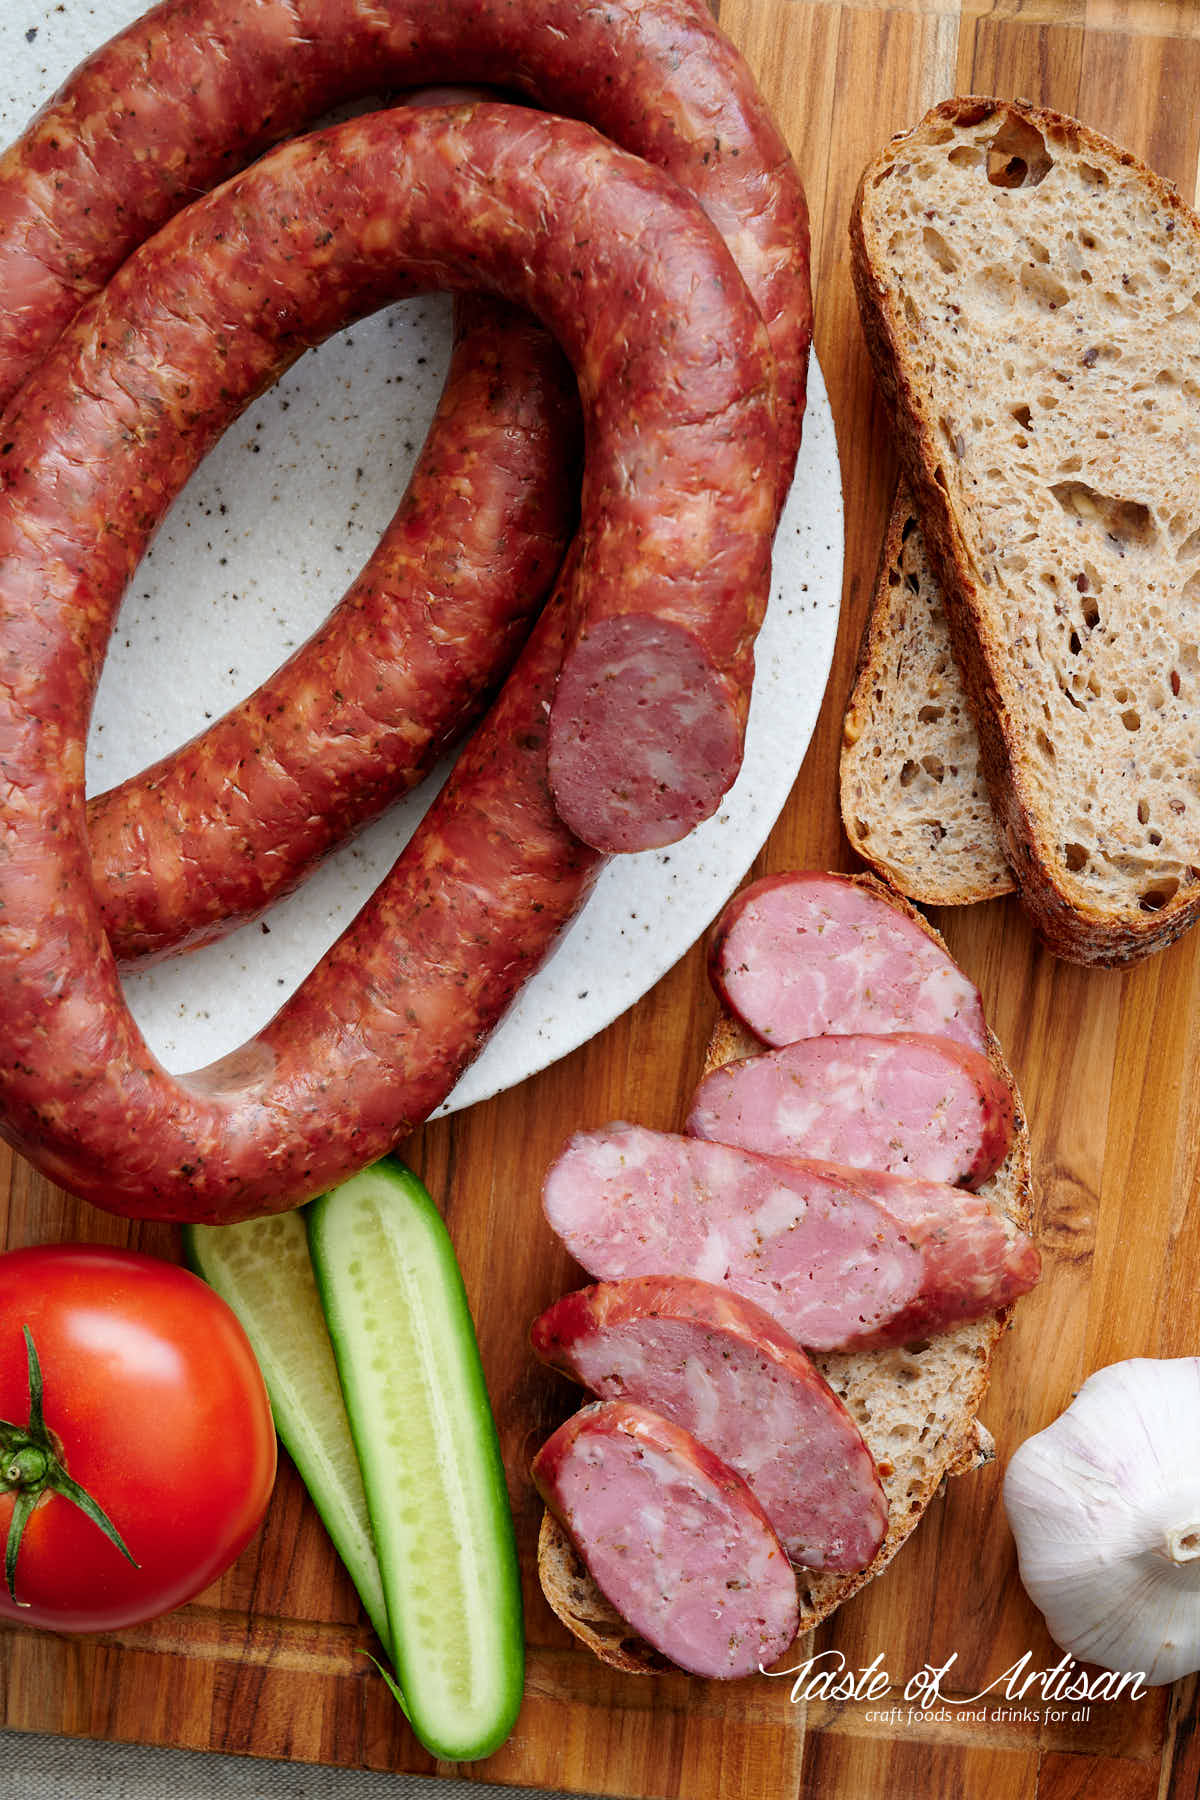 Whole and pieces of sliced garlic sausage on a table, with sliced bread and vegetables.